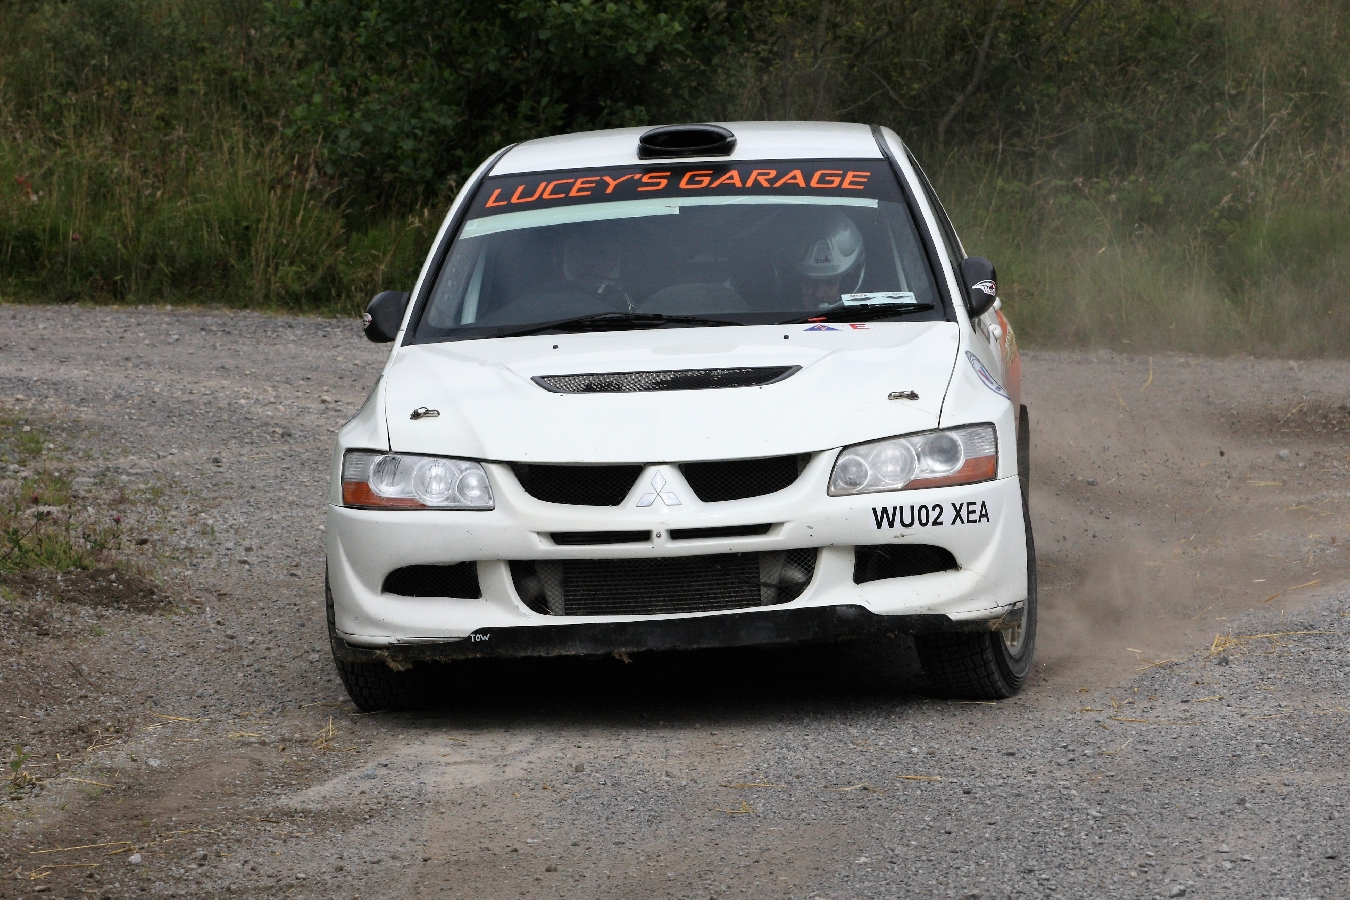 Fantastic Foray Into The Fermanagh Forests for Valvoline Crews! 2017 Valvoline Motorsport Ireland National Forest Rally Championship-Round Five